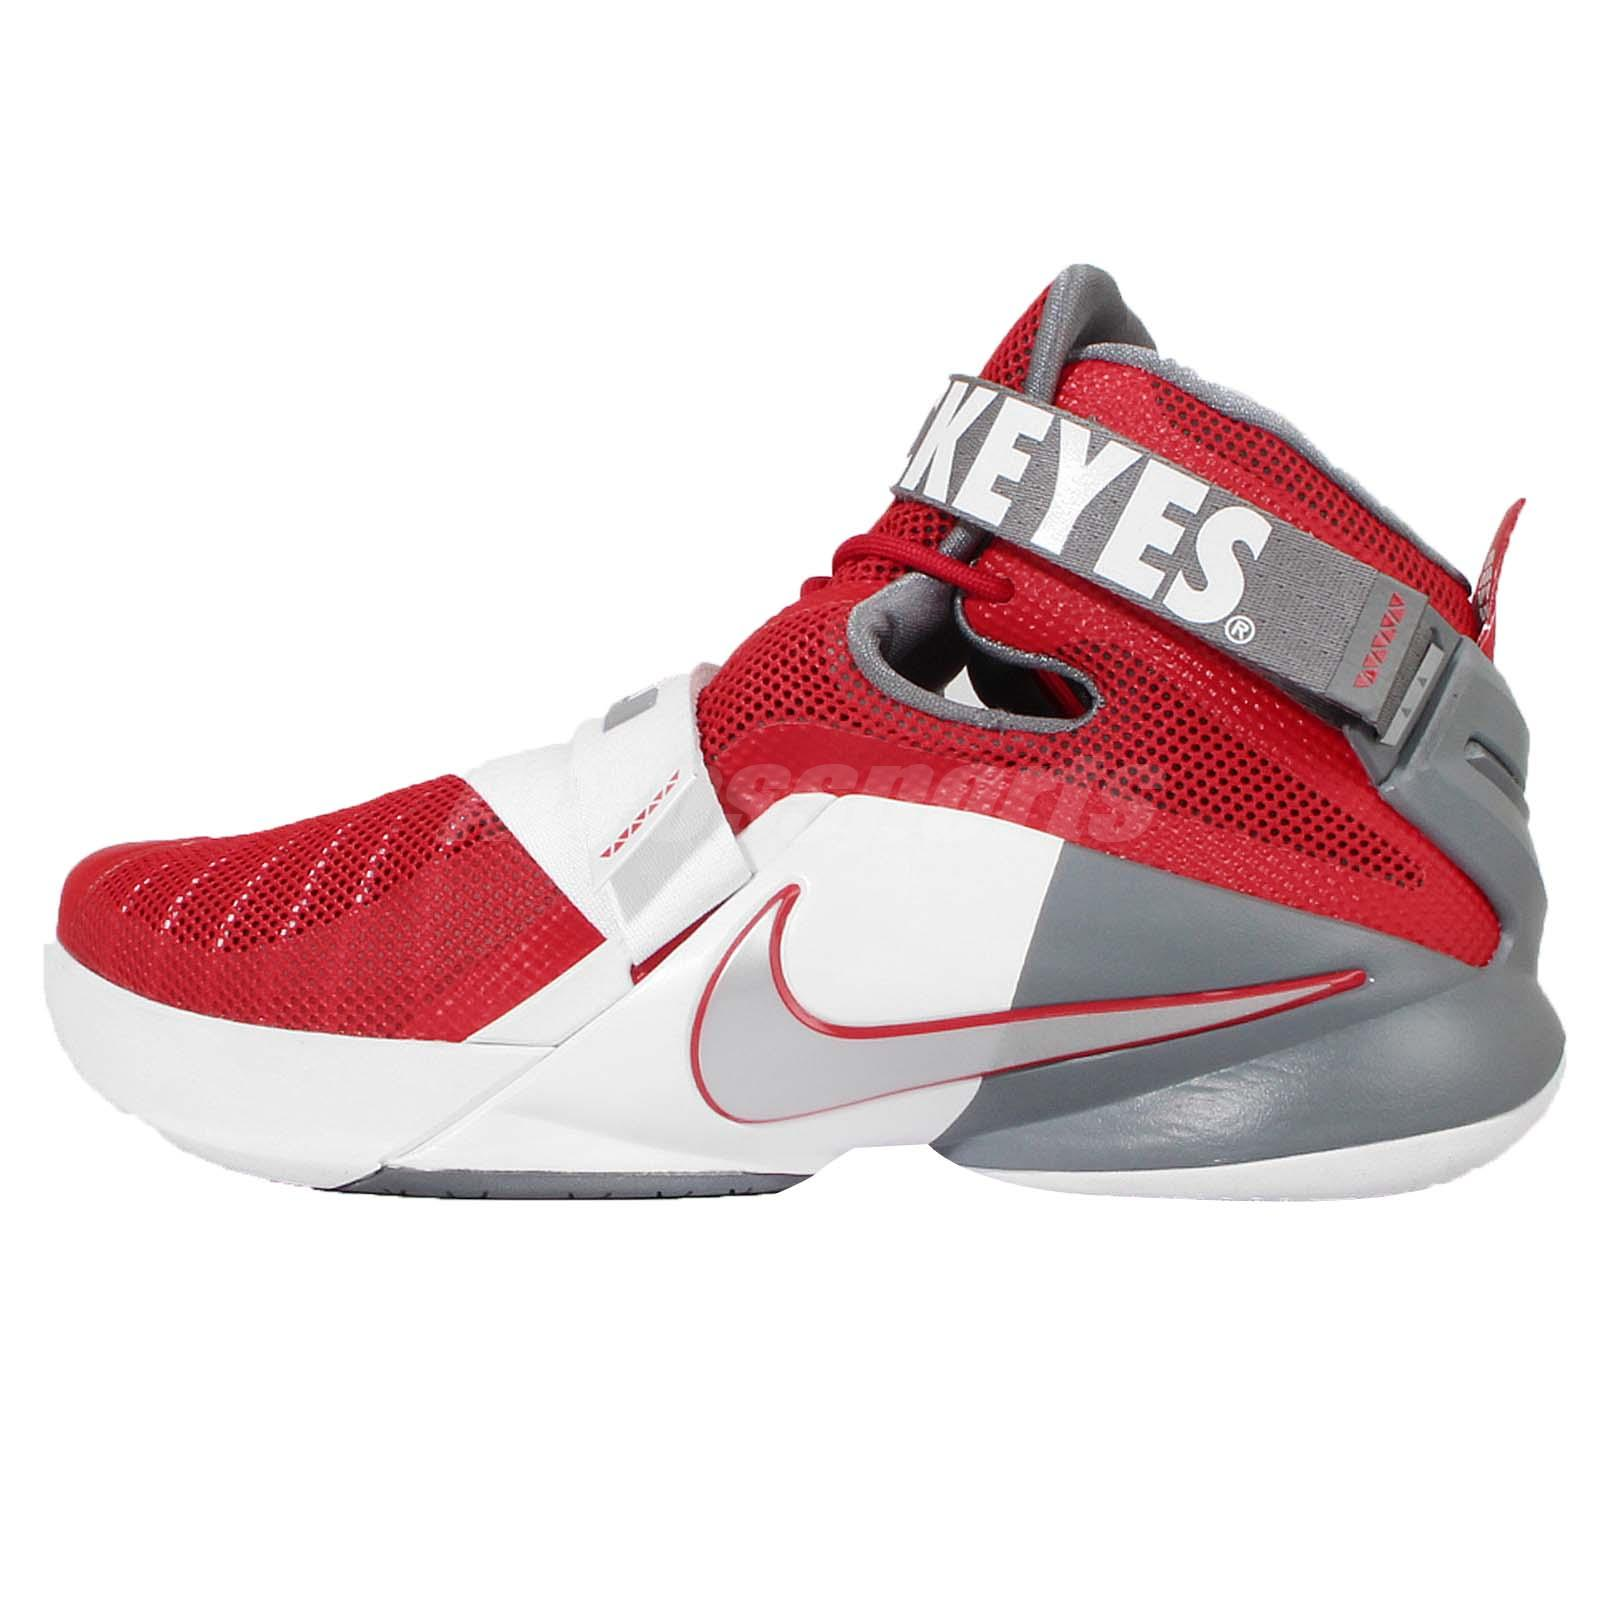 Ohio State Nike Shoes